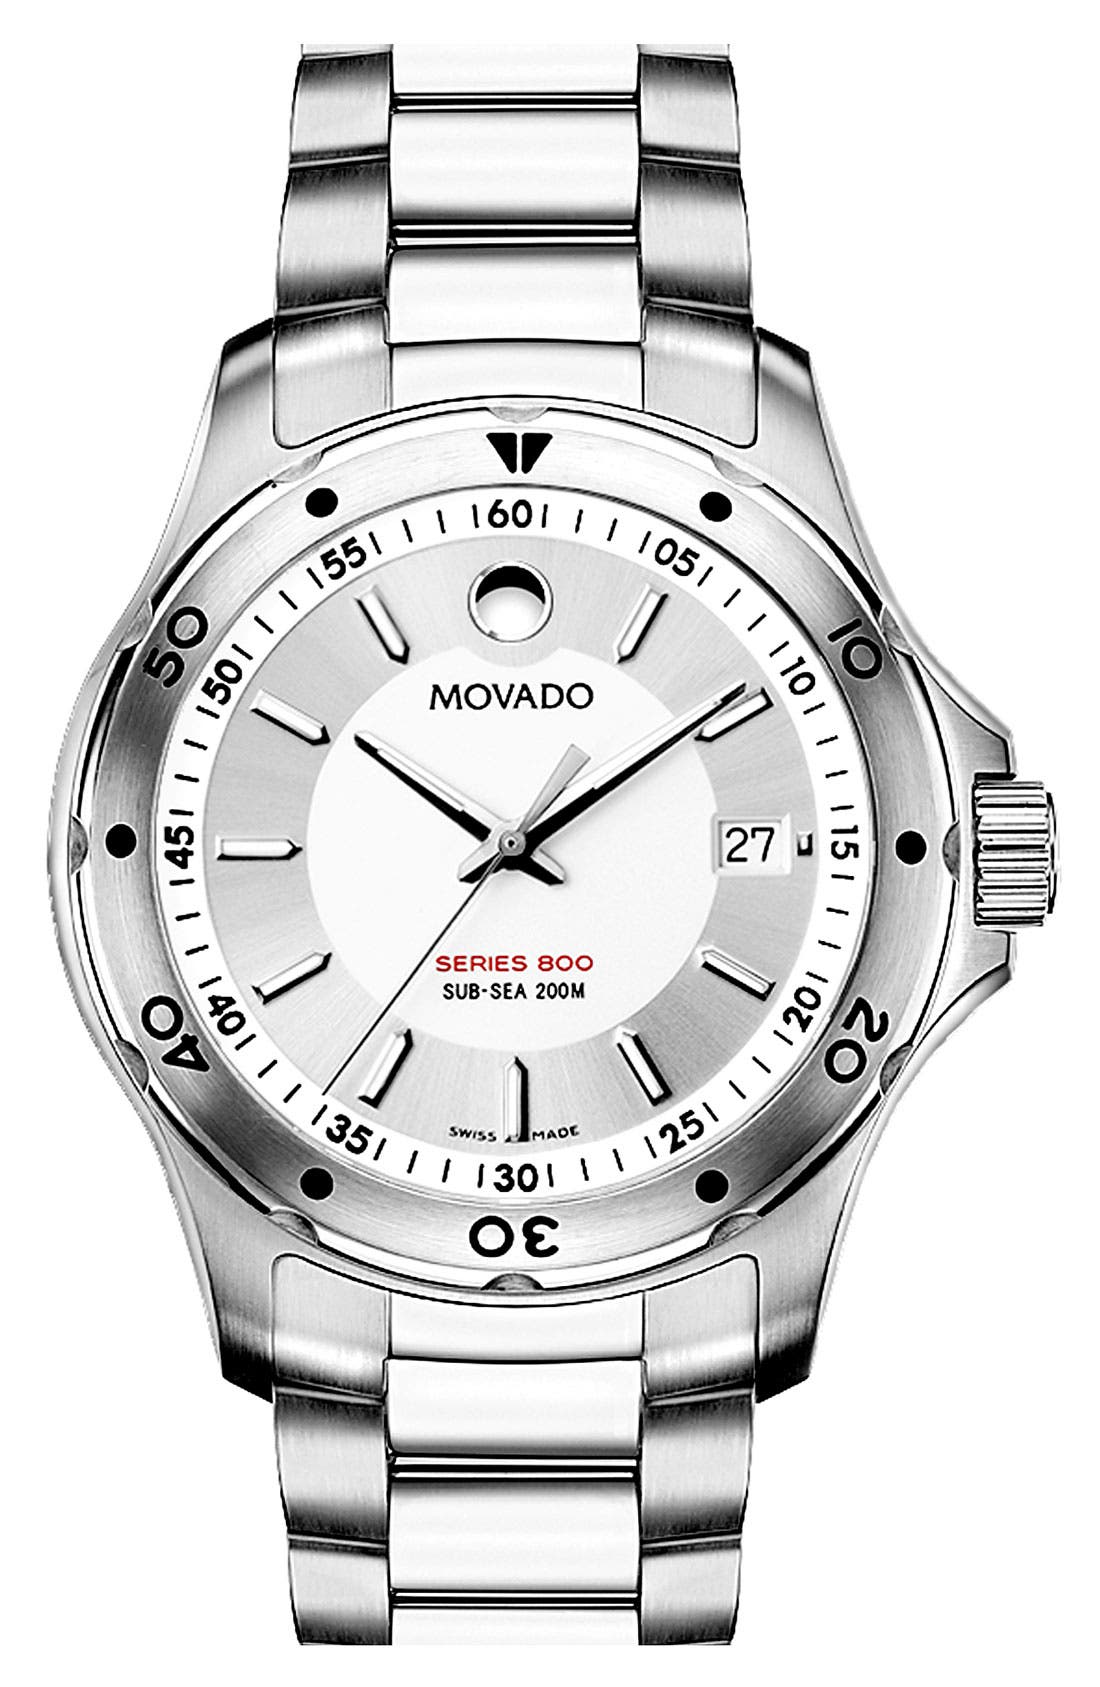 Main Image - Movado 'Series 800' Men's Stainless Steel Watch